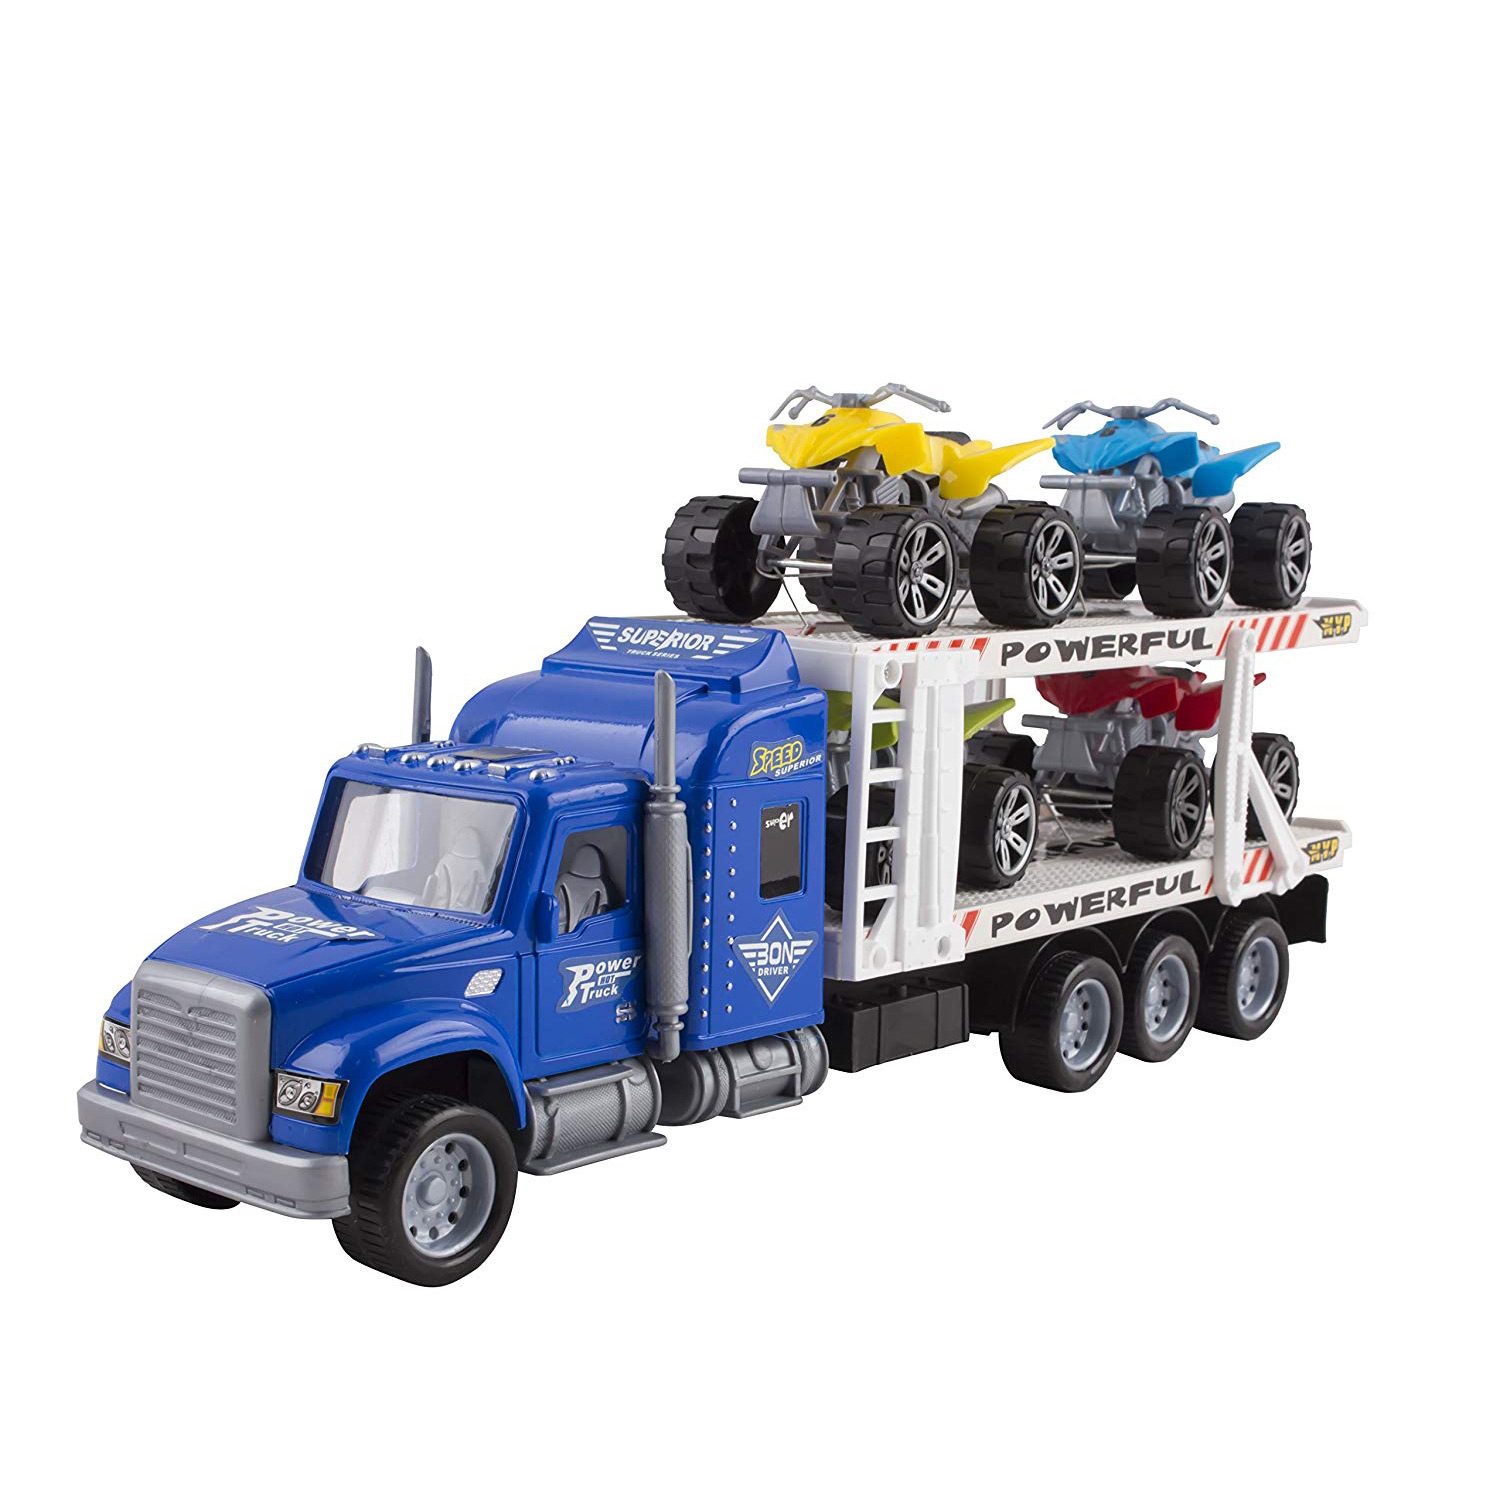 Toy Truck Transporter Trailer 145 Childrens Friction Big Rig With 4 ATV Toys No Batteries Or Assembly Required Perfect Semi Truck For Kids Blue Truck